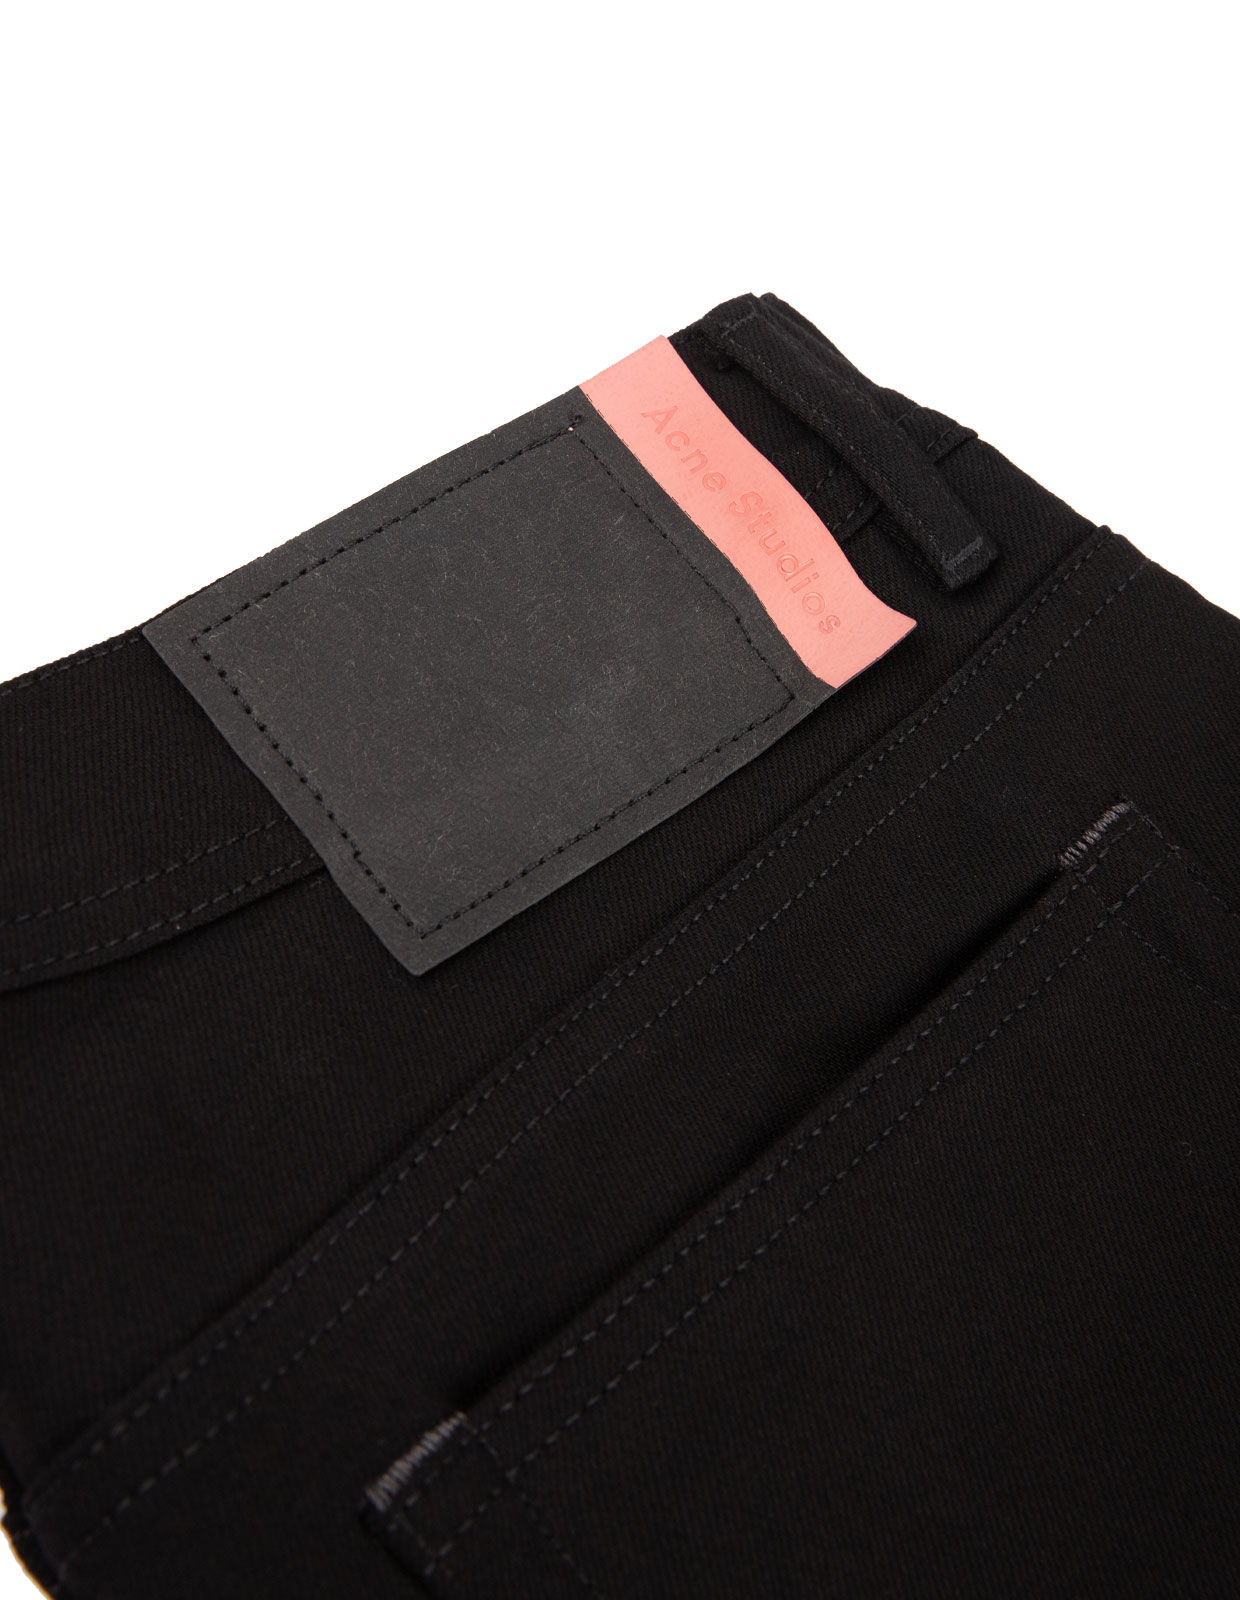 North Jeans StayBlack